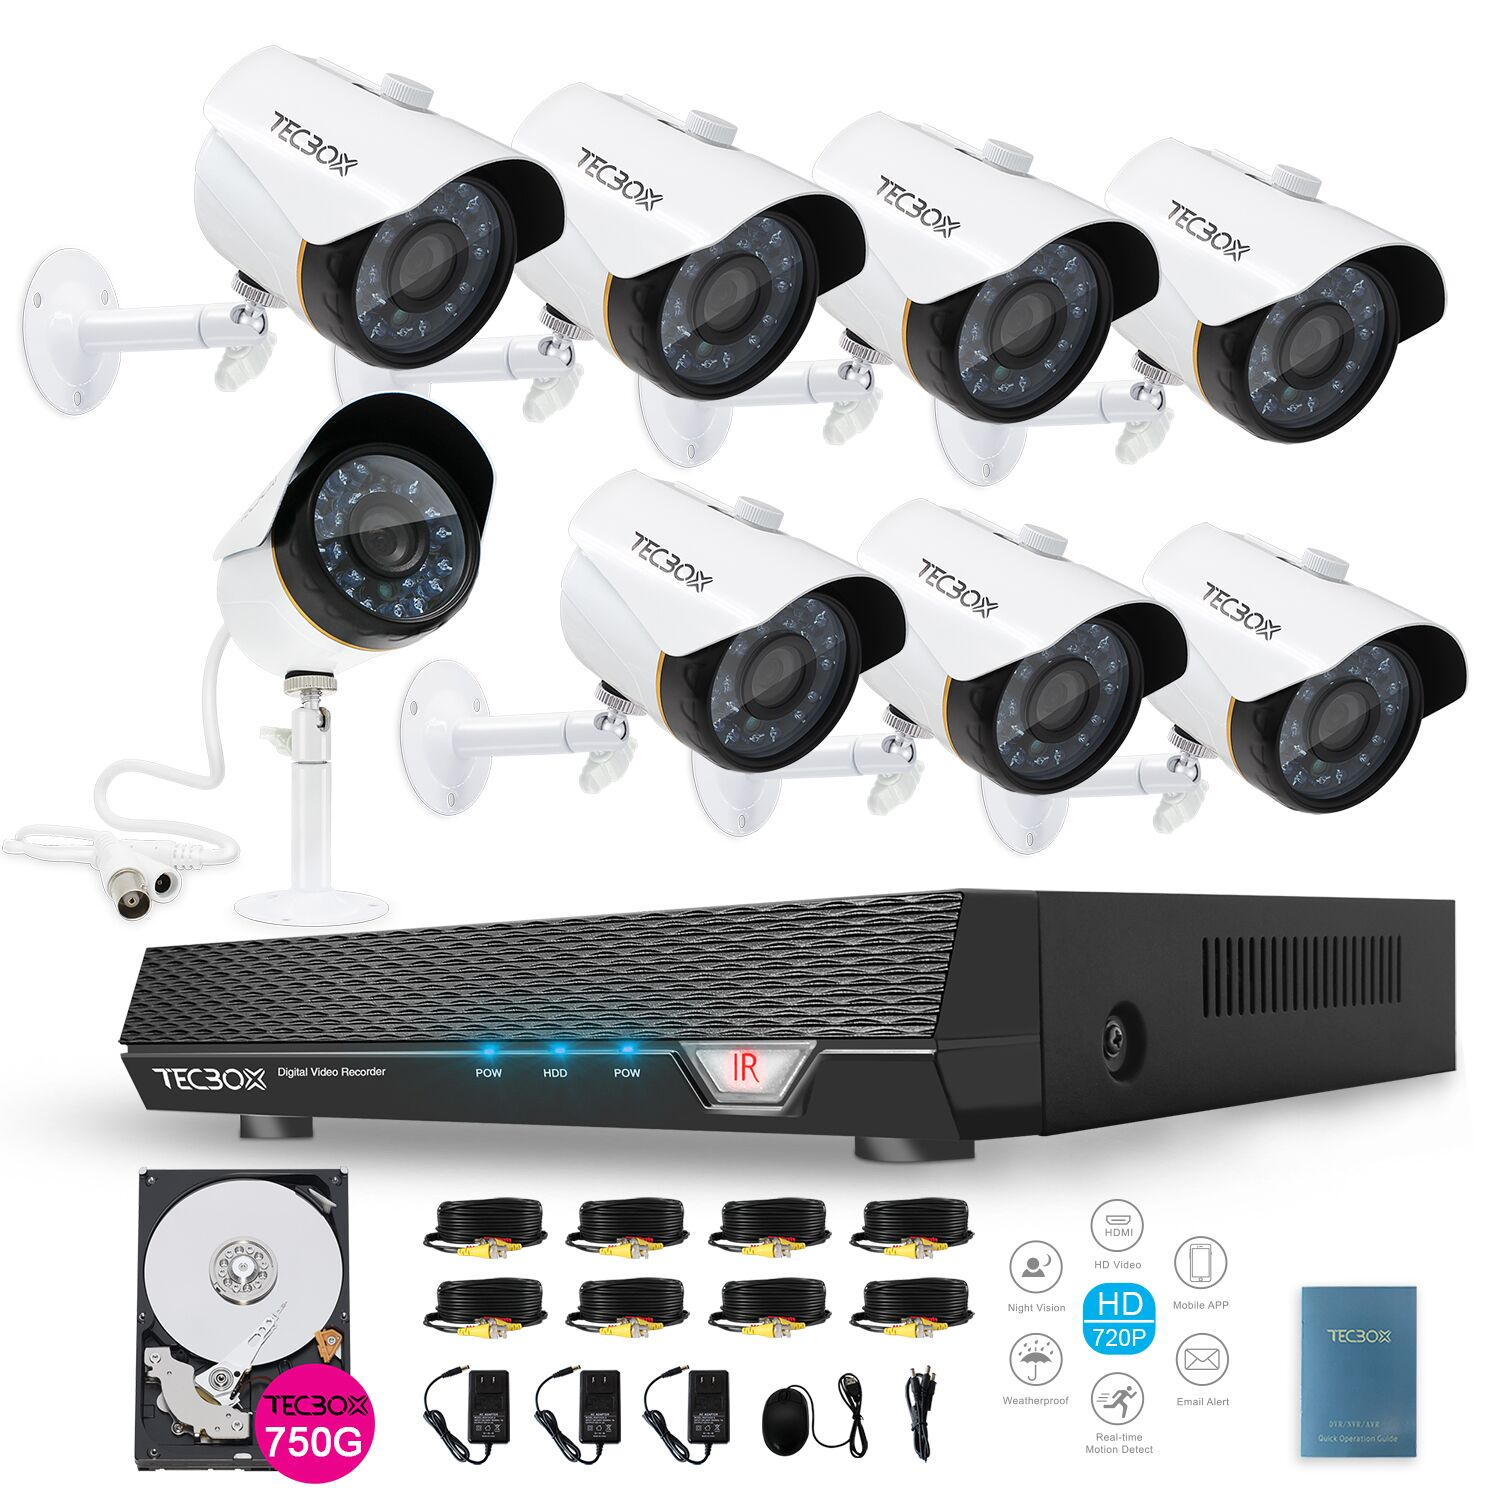 Tecbox 8 Channel Home Security Camera System CCTV Surveillance HDMI AHD DVR 8 HD 1.3MP 720P Indoor/Outdoor Cameras Remote View Motion Detection 750GB HDD Pre-installed